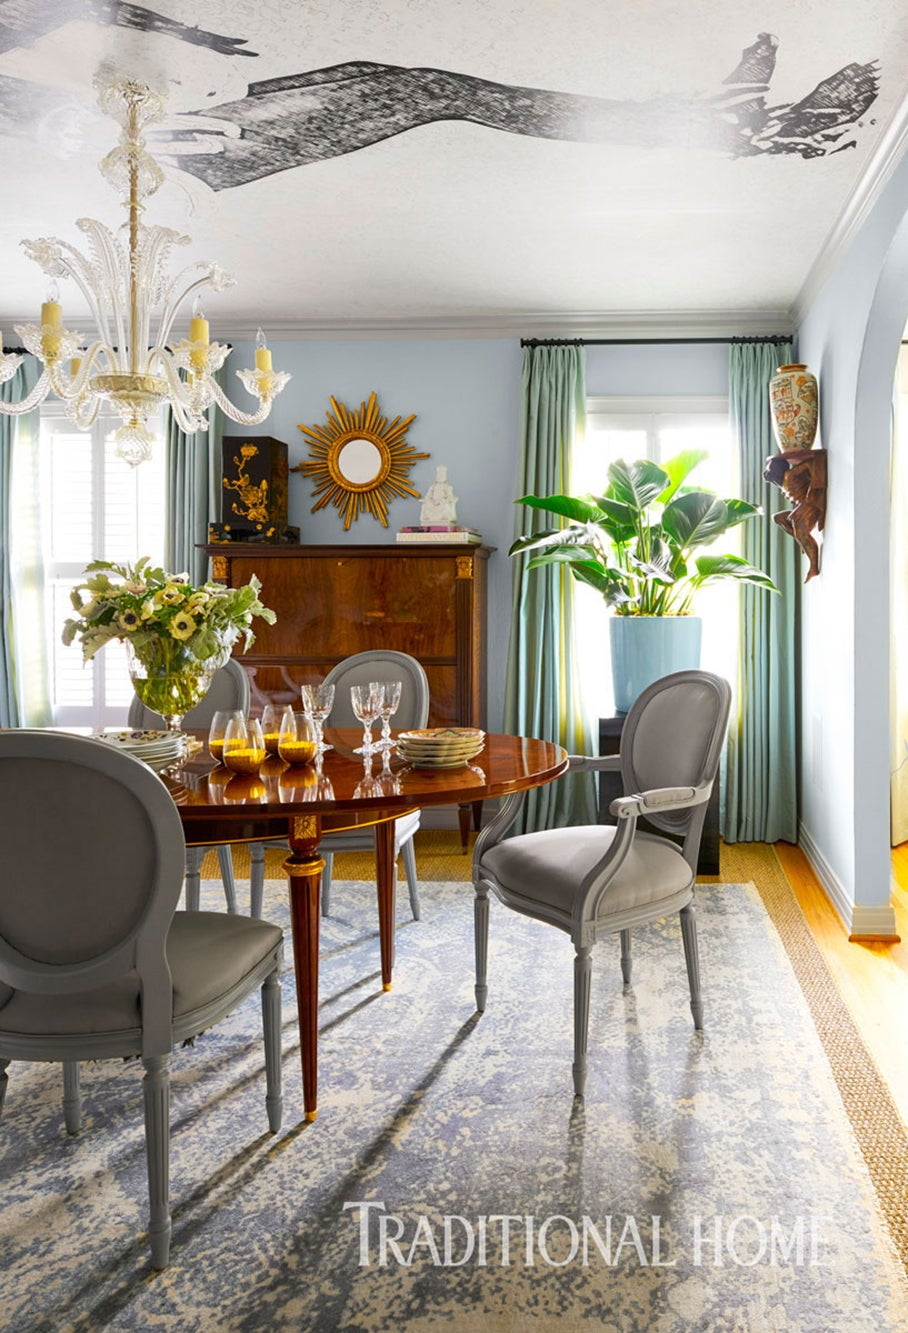 Calmness And Casual Elegance Set The Tone In This Dining Room Interior Designer Mice Nussbaumer Photographer Nathan Schroder Photography Magazine